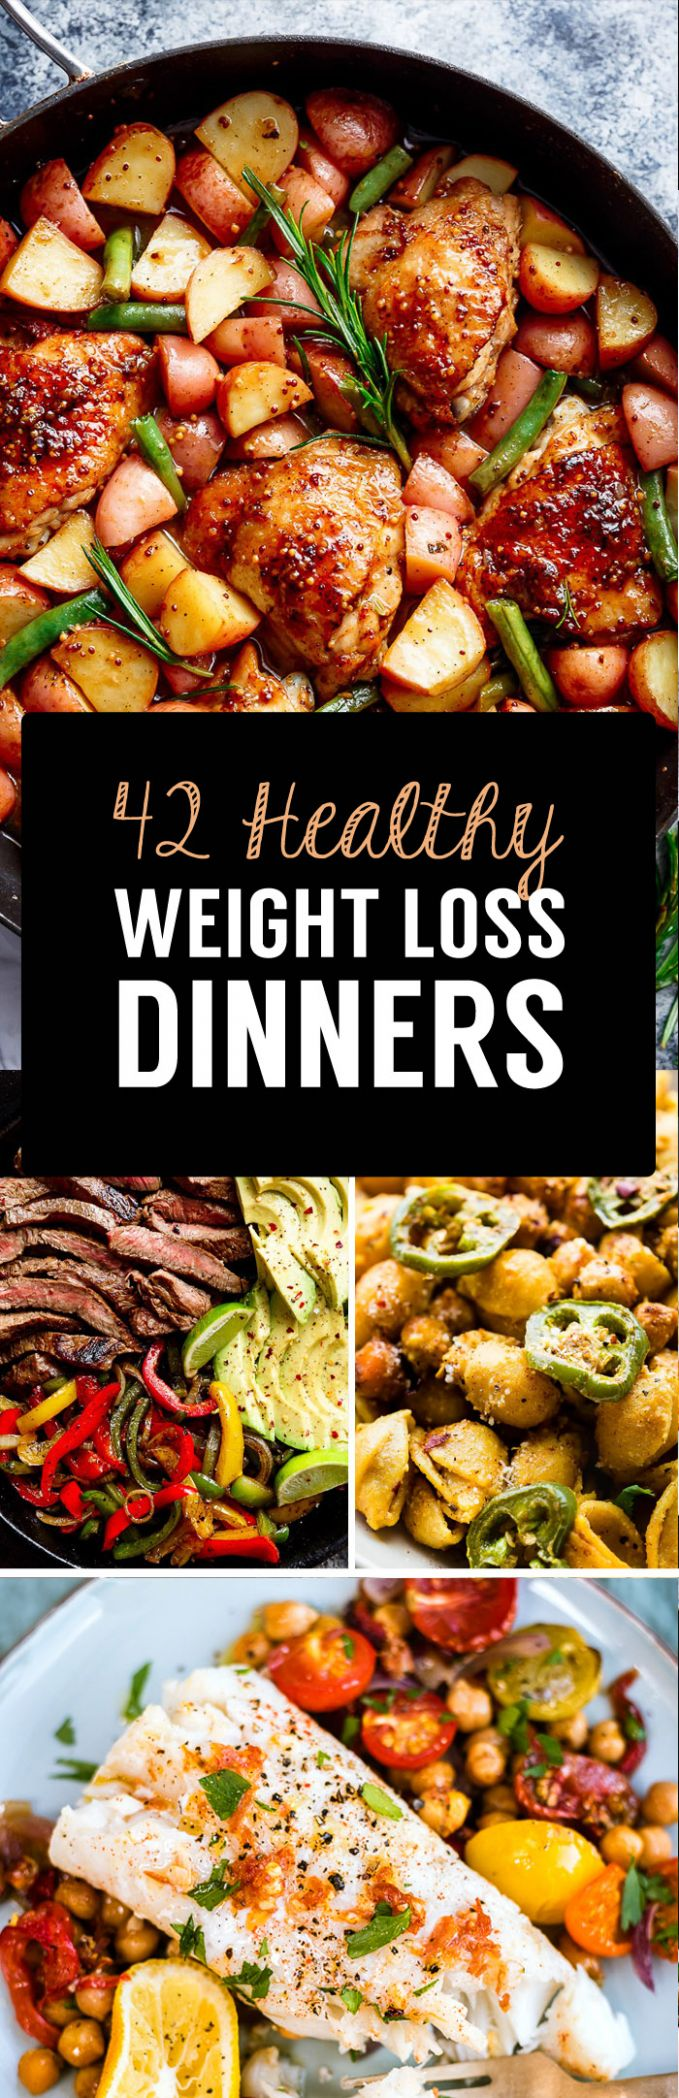 11 Weight Loss Dinner Recipes That Will Help You Shrink Belly Fat ...